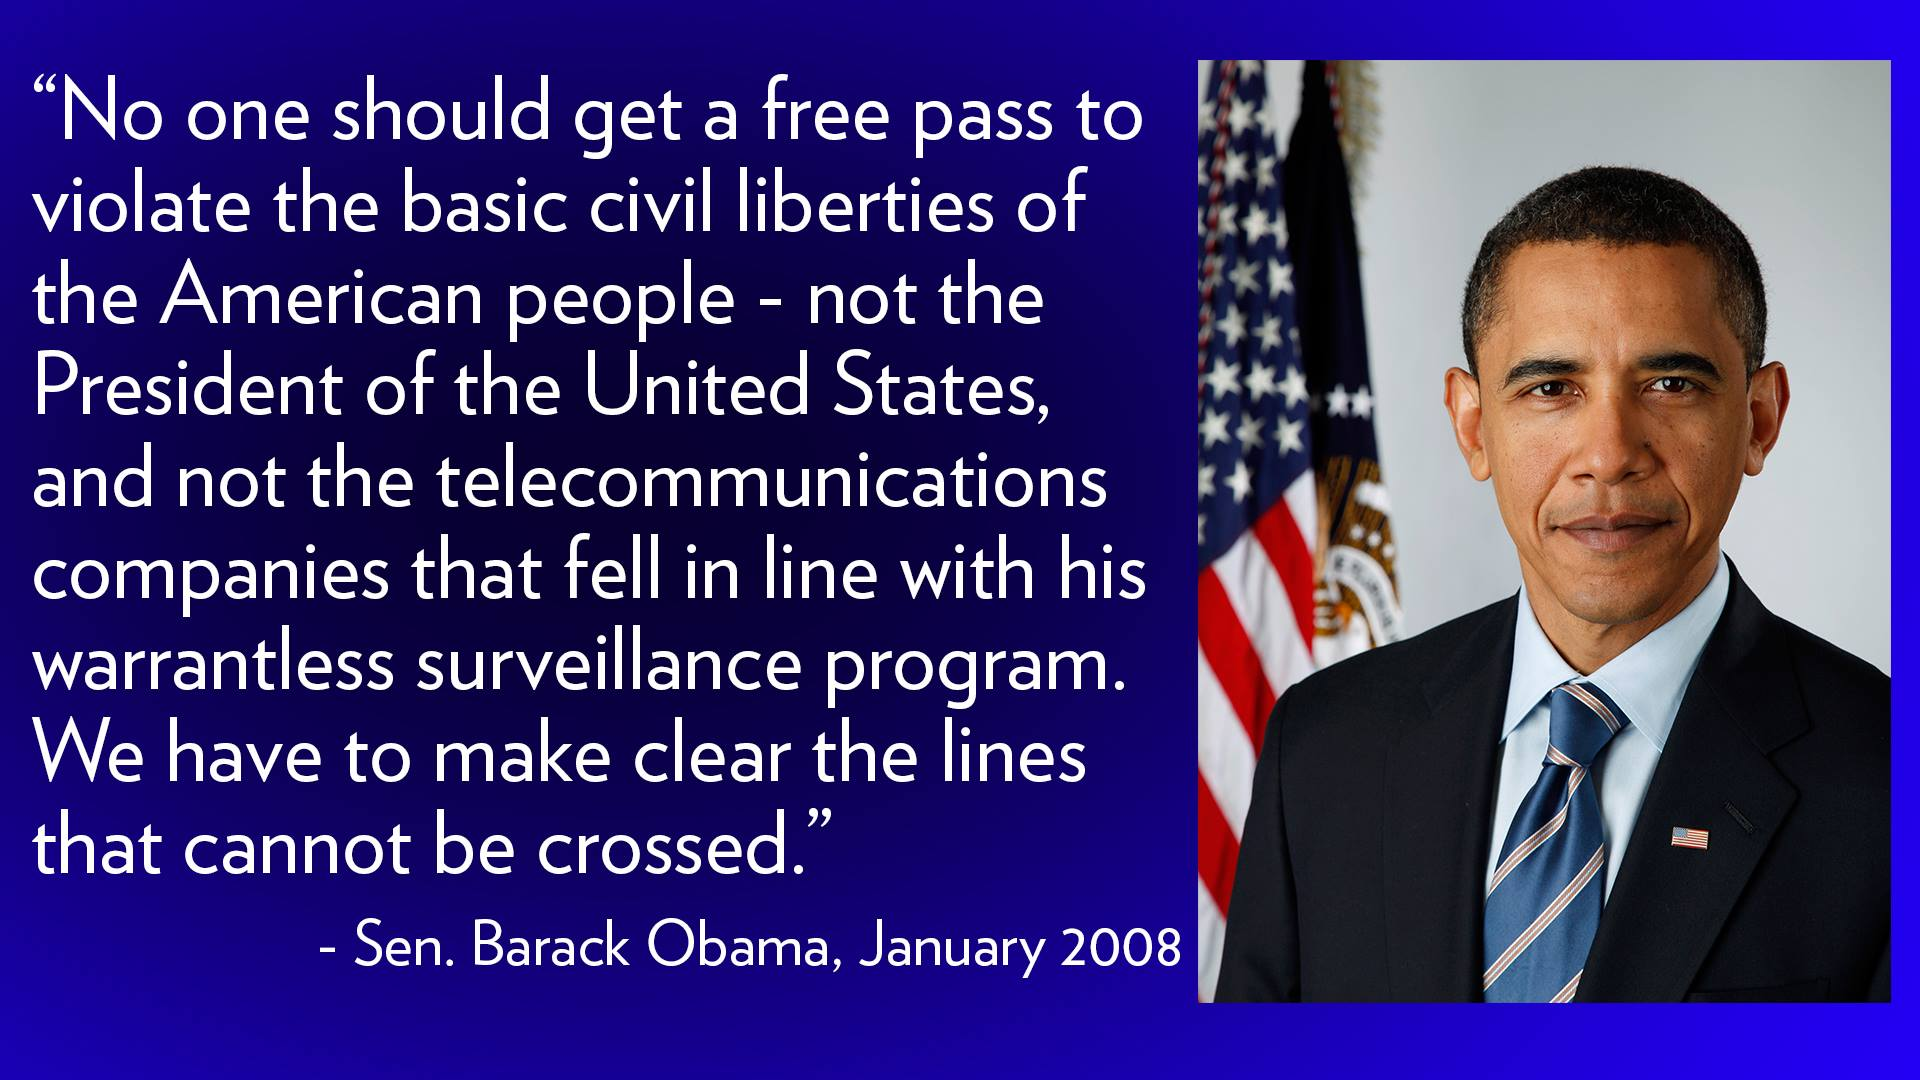 Picture of Barack Obama and 2008 quote from him on telecom immunity